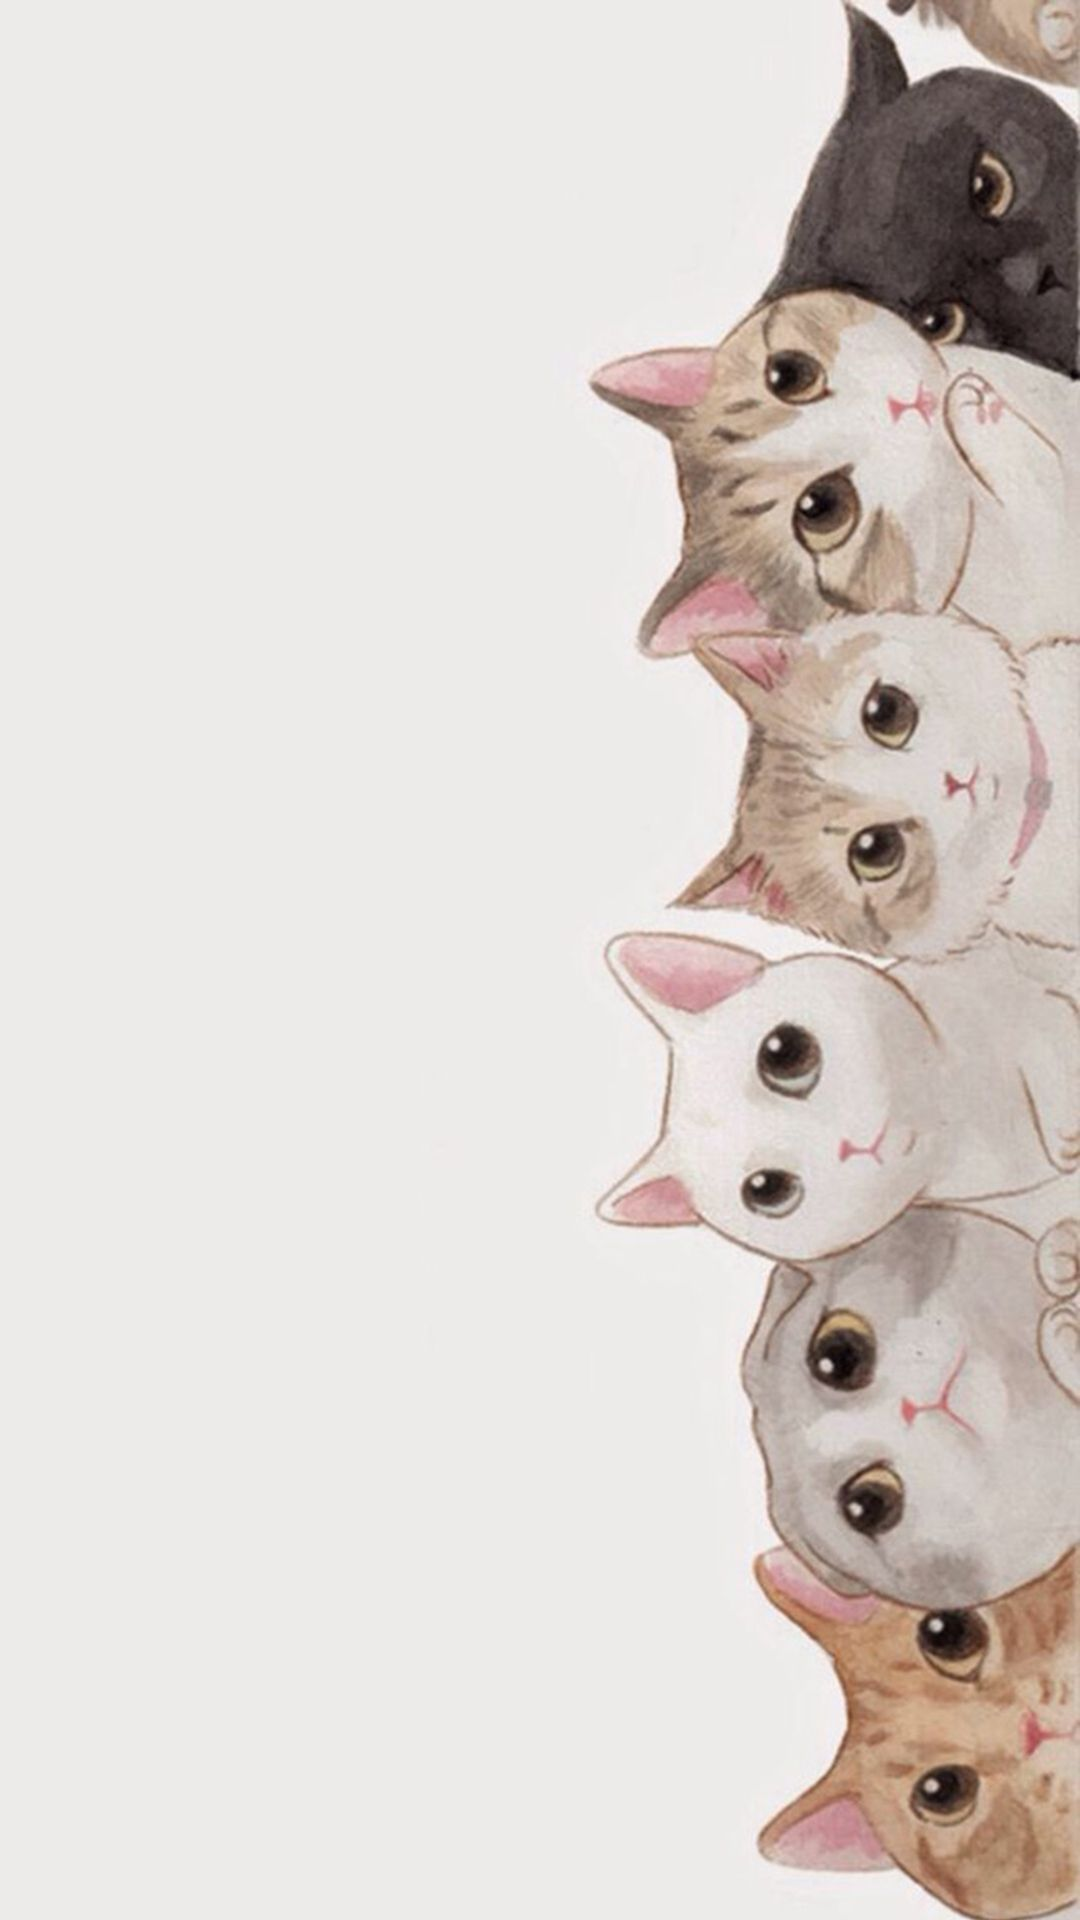 Cute Cats Vertical Aligned Illustration Iphone 6 Plus Wallpaper Cat Art Cat Wallpaper Cute Wallpapers